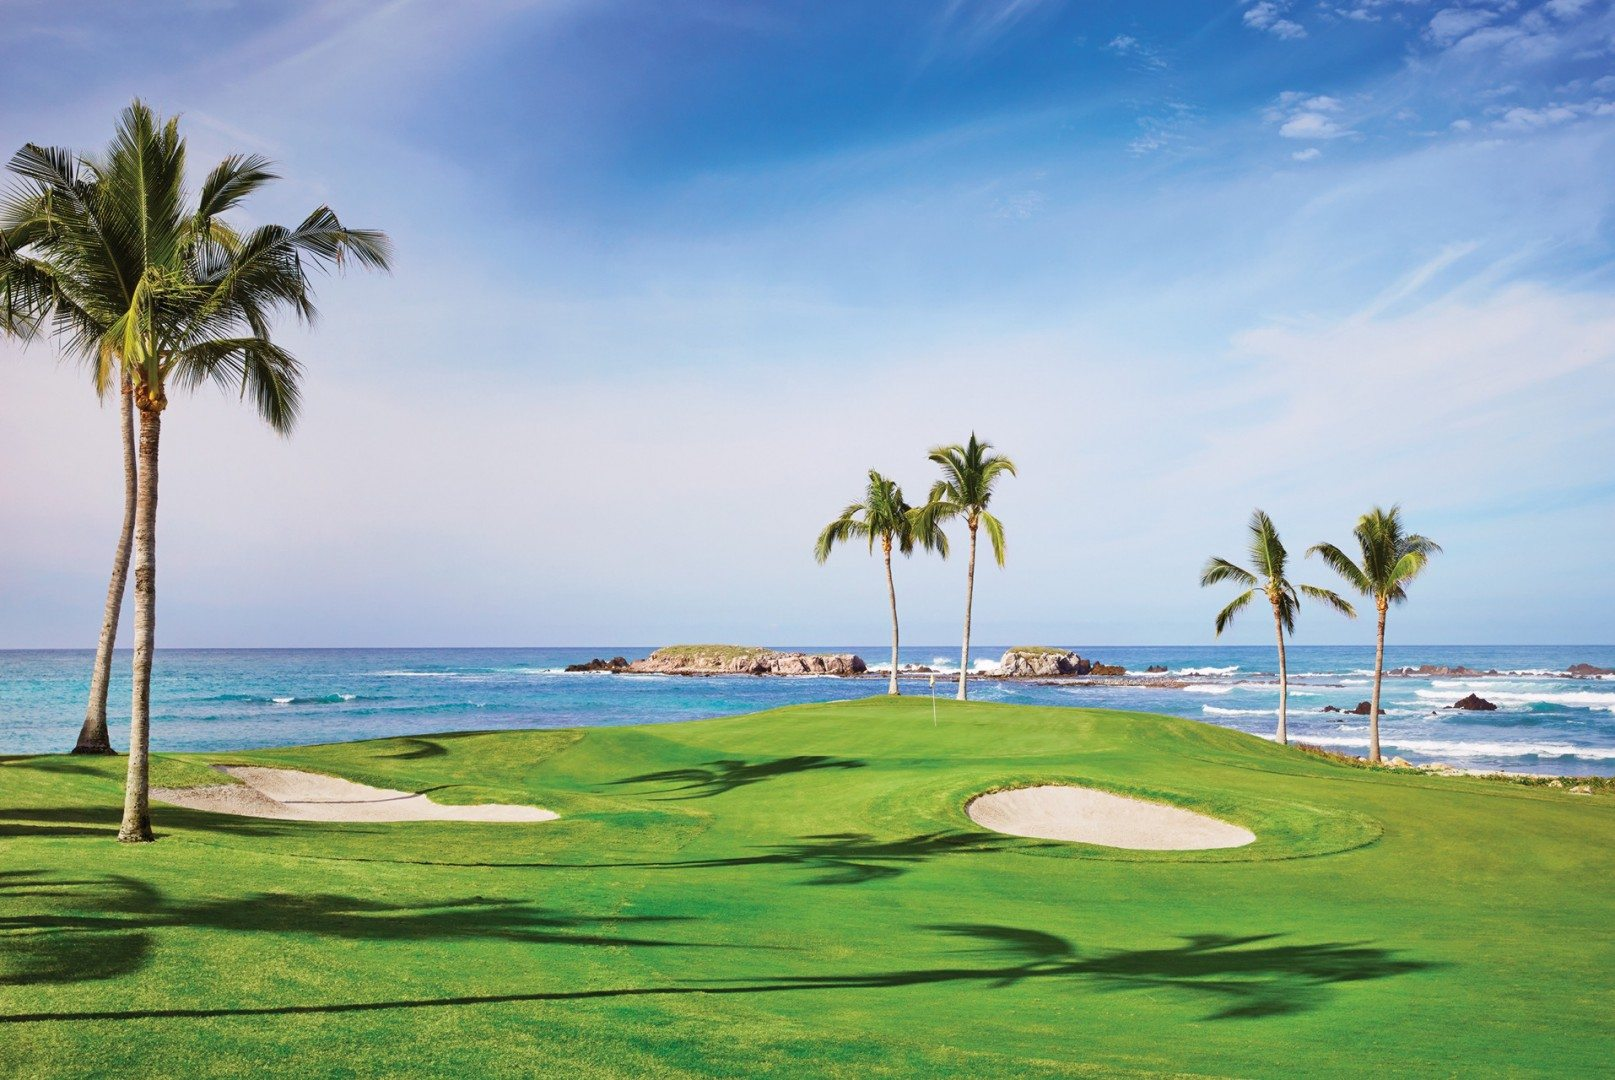 Pacifico Golf Course, Punta Mita, Four Seasons